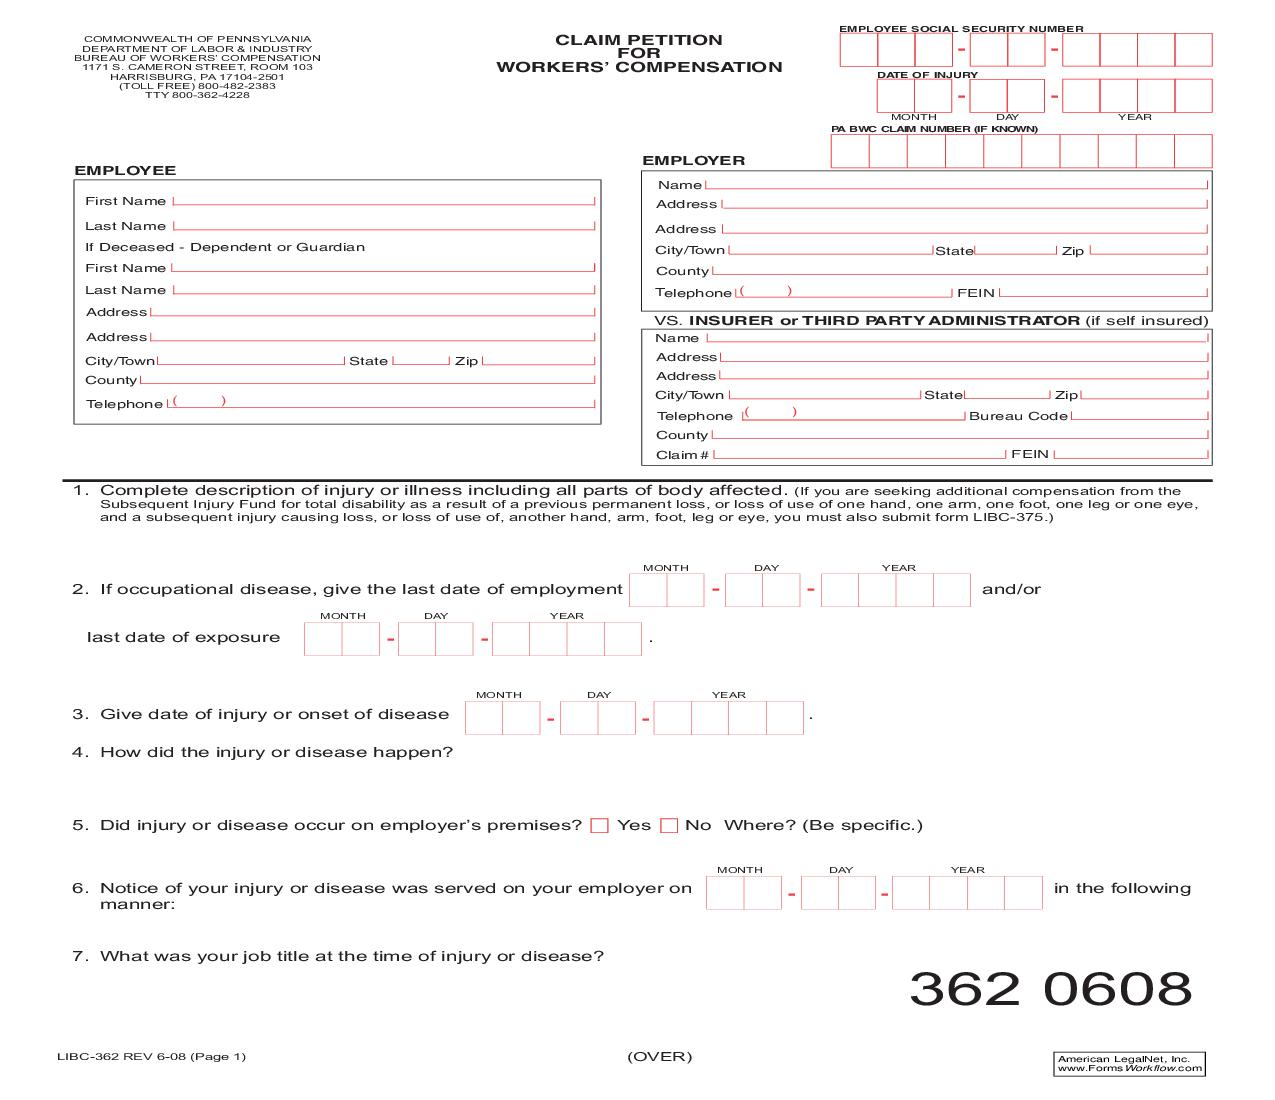 Claim Petition For Workers Compensation {LIBC-362}   Pdf Fpdf Doc Docx   KnoxLaw